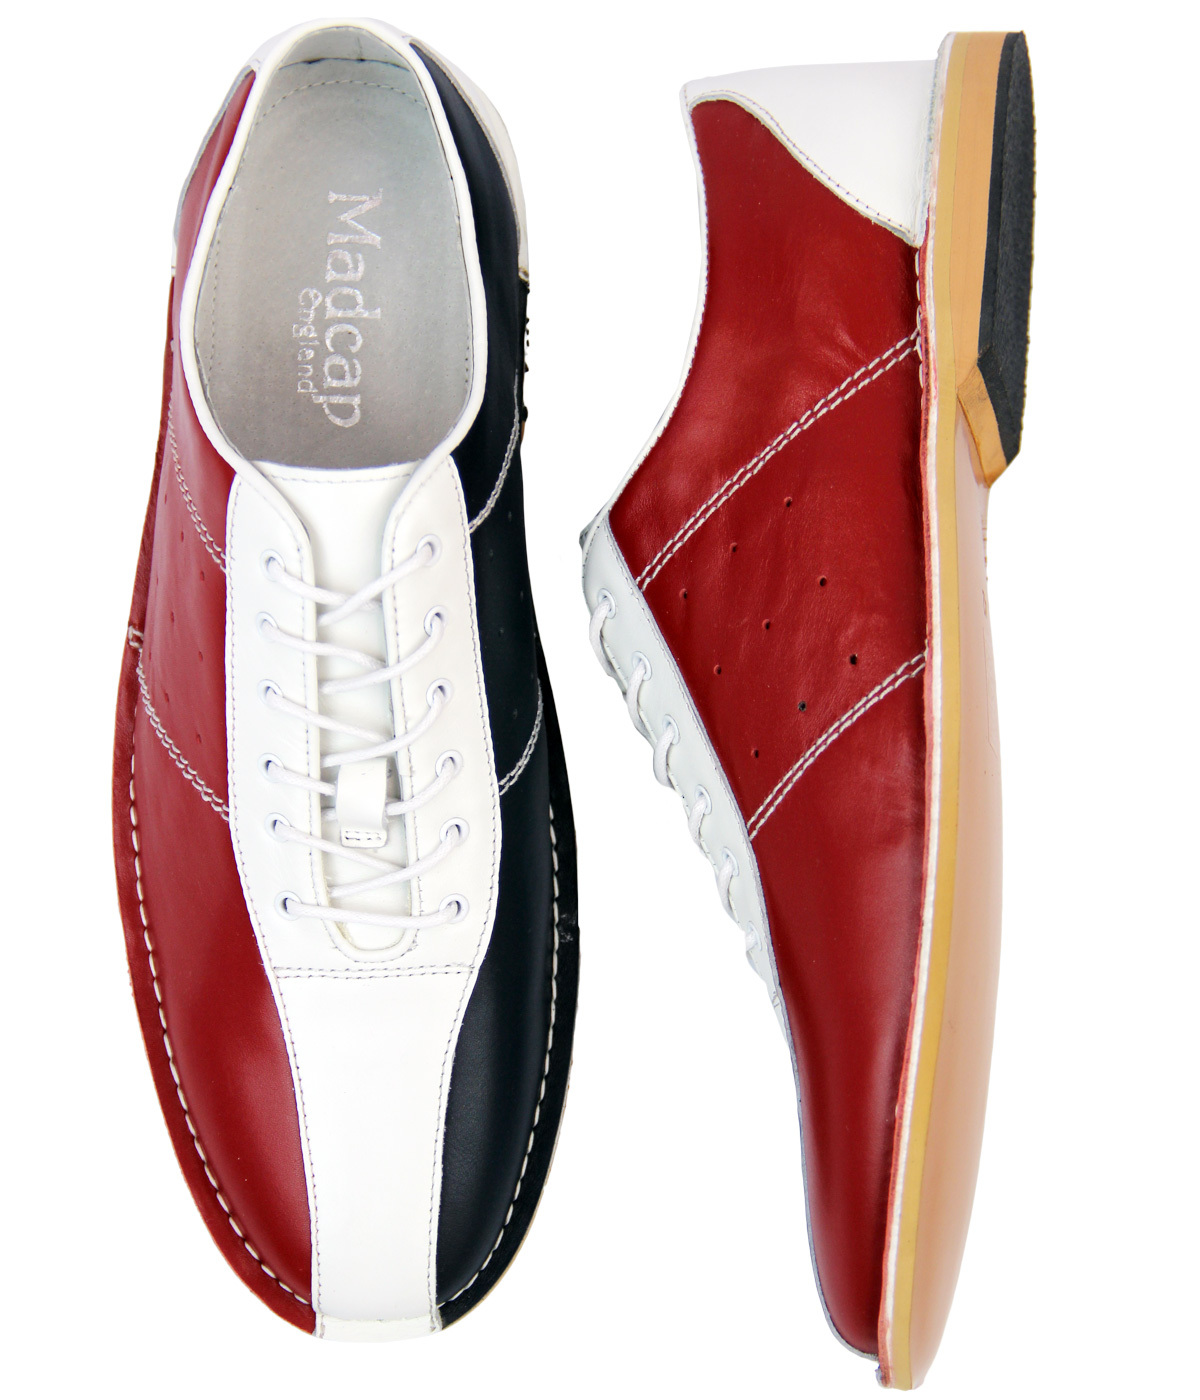 60s Style Shoes Bowling shoe look a